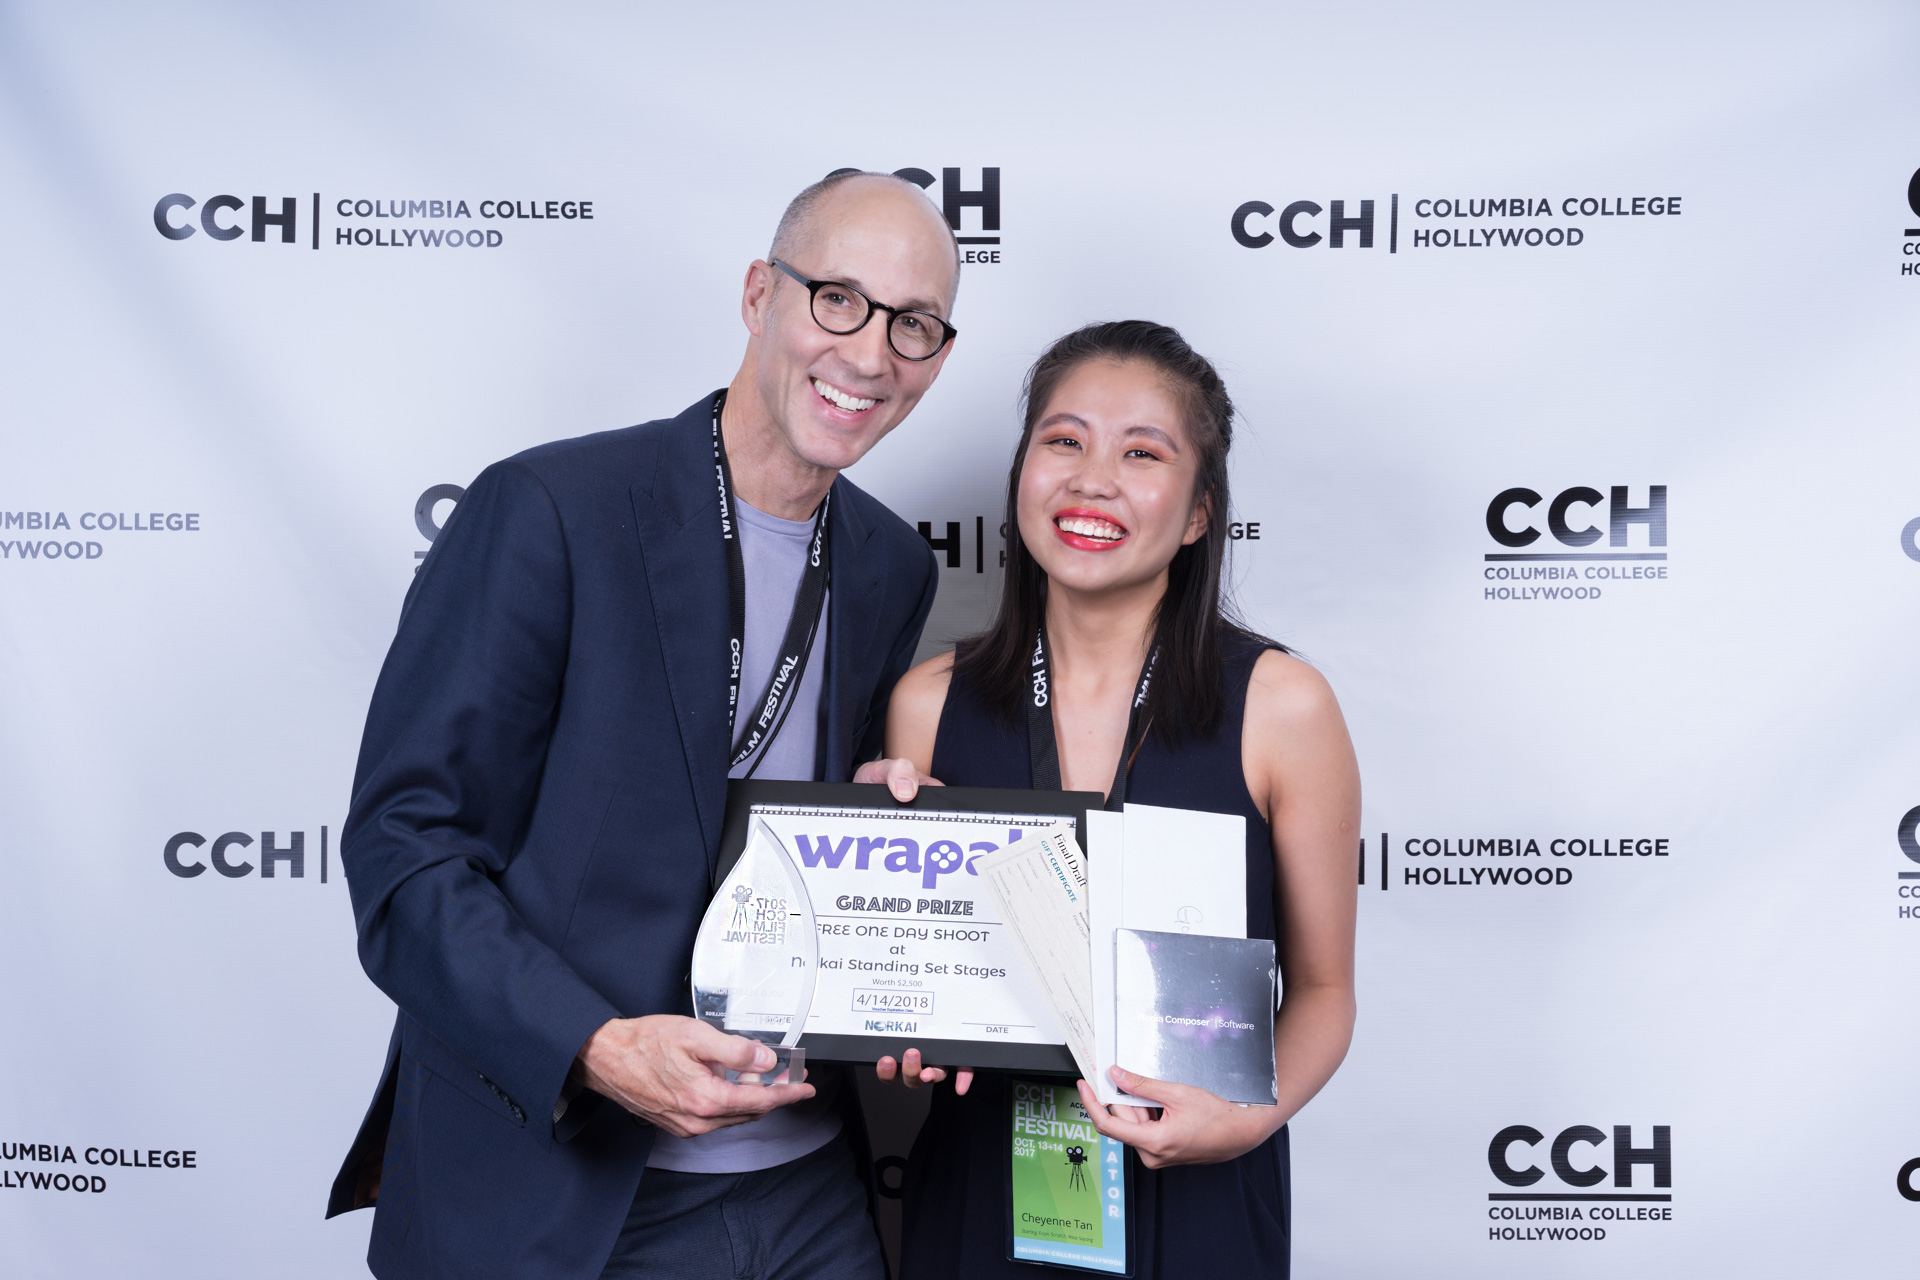 2017 1st Place Winner Cheyenne Tan with    Columbia College Hollywood President Bill Smith